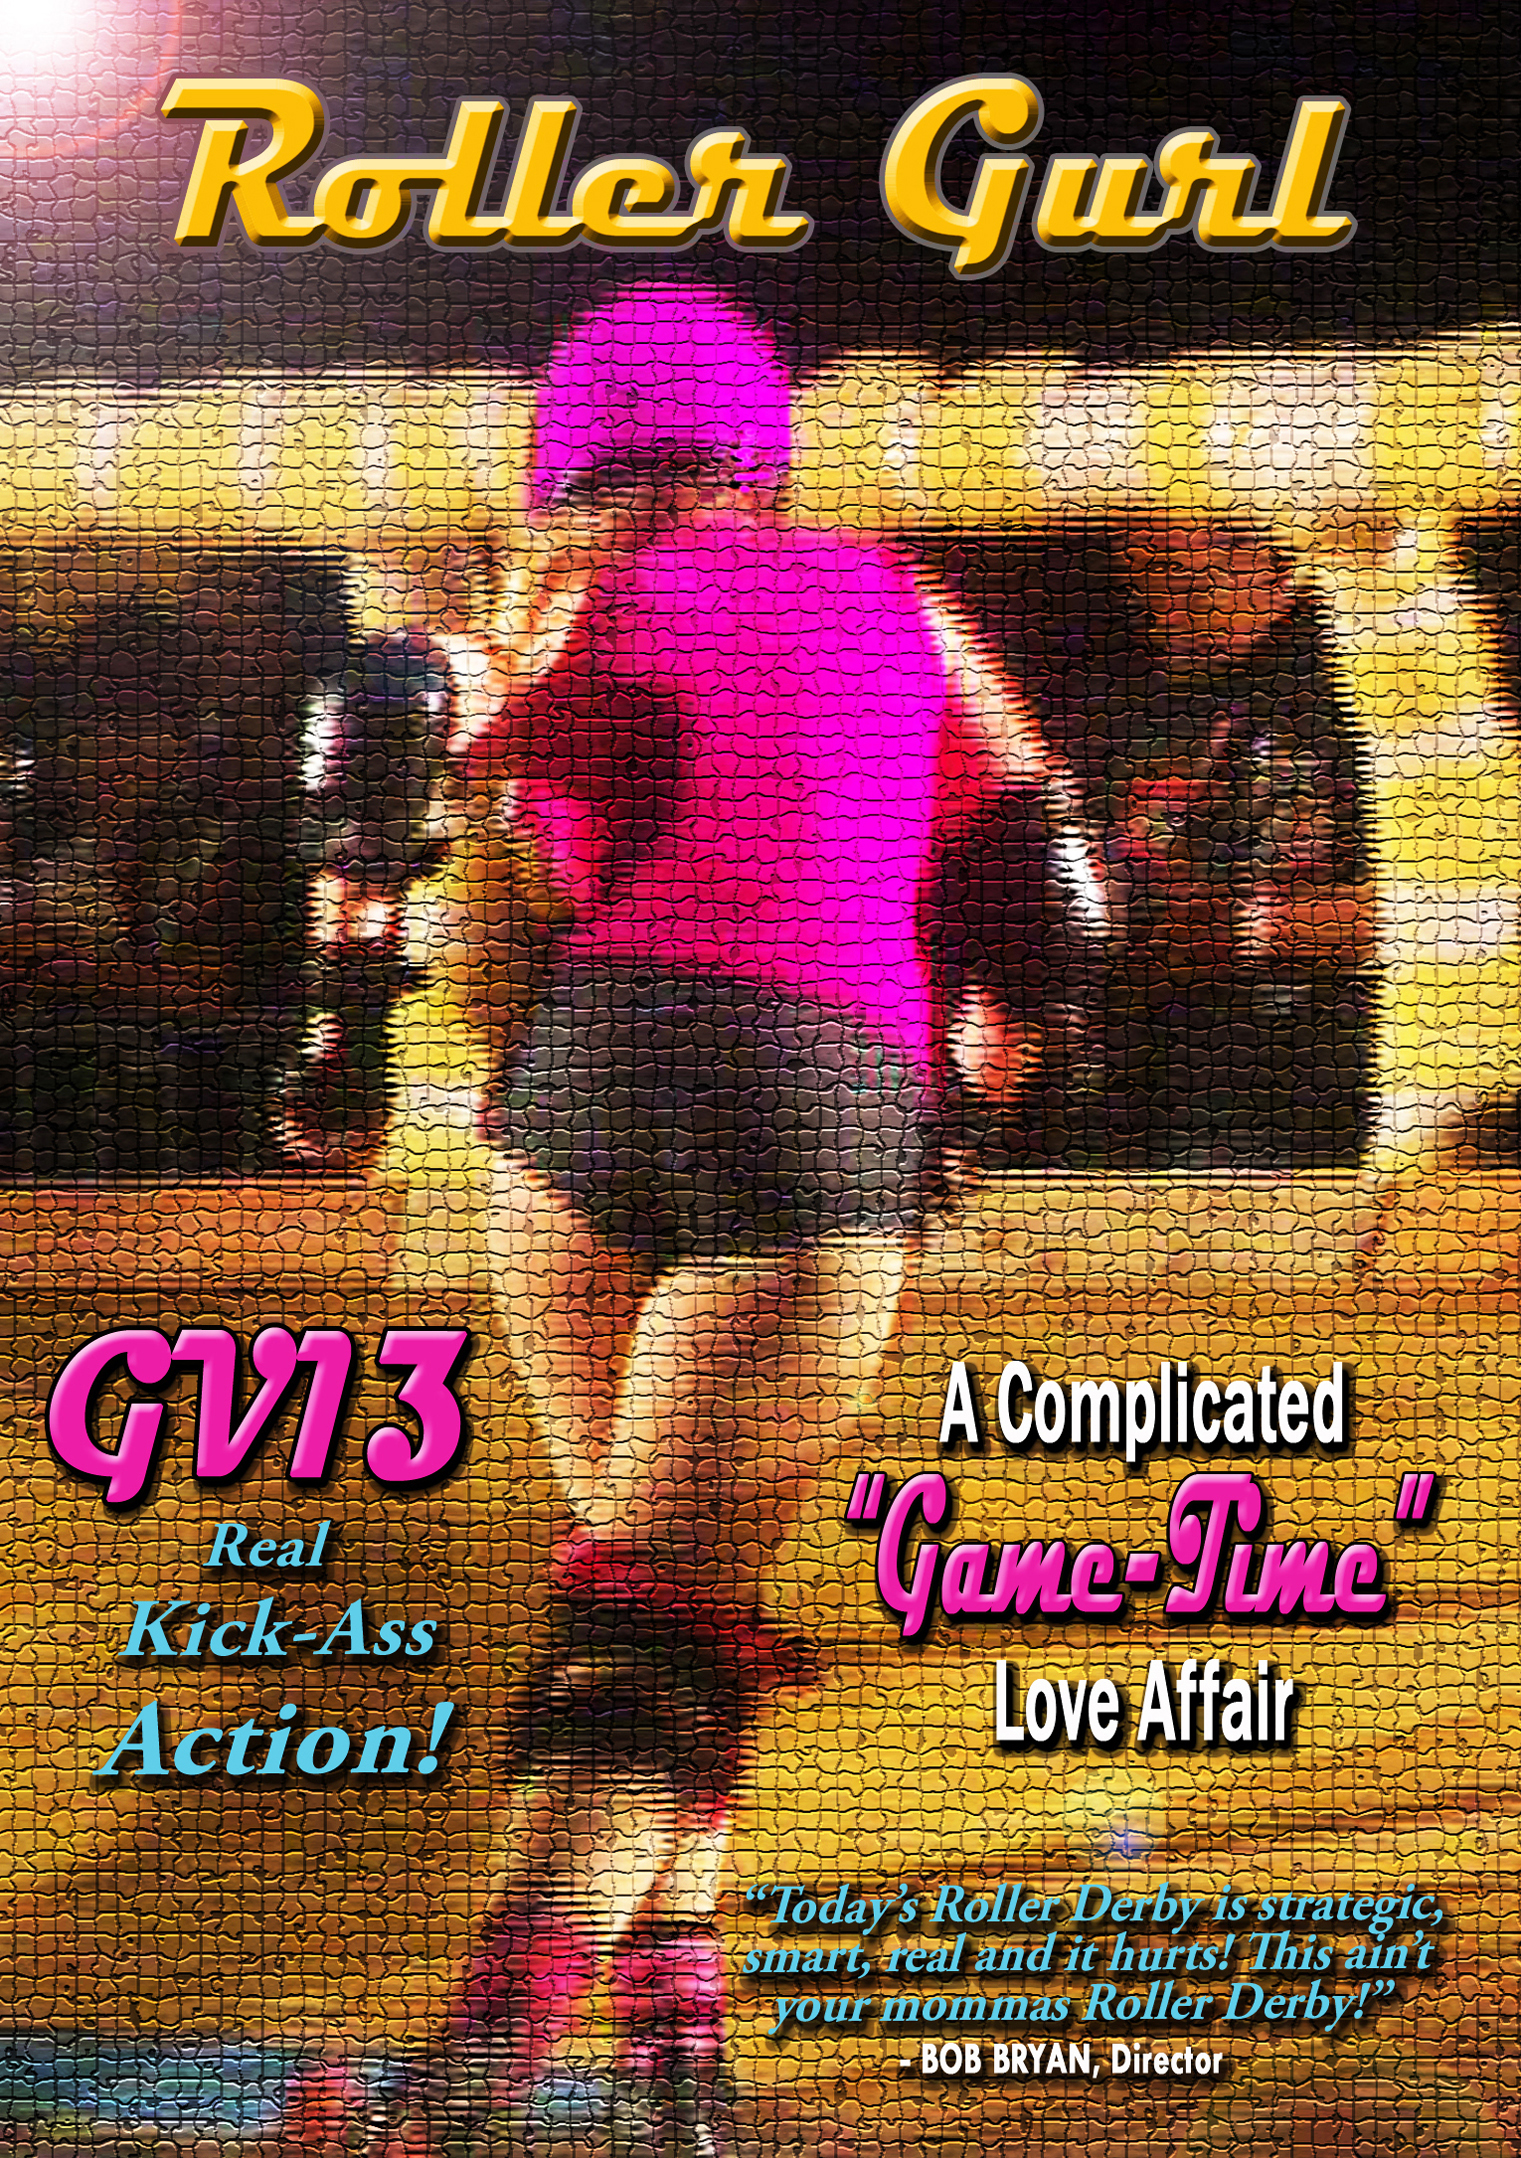 GV13: Roller Gurl - A Complicated